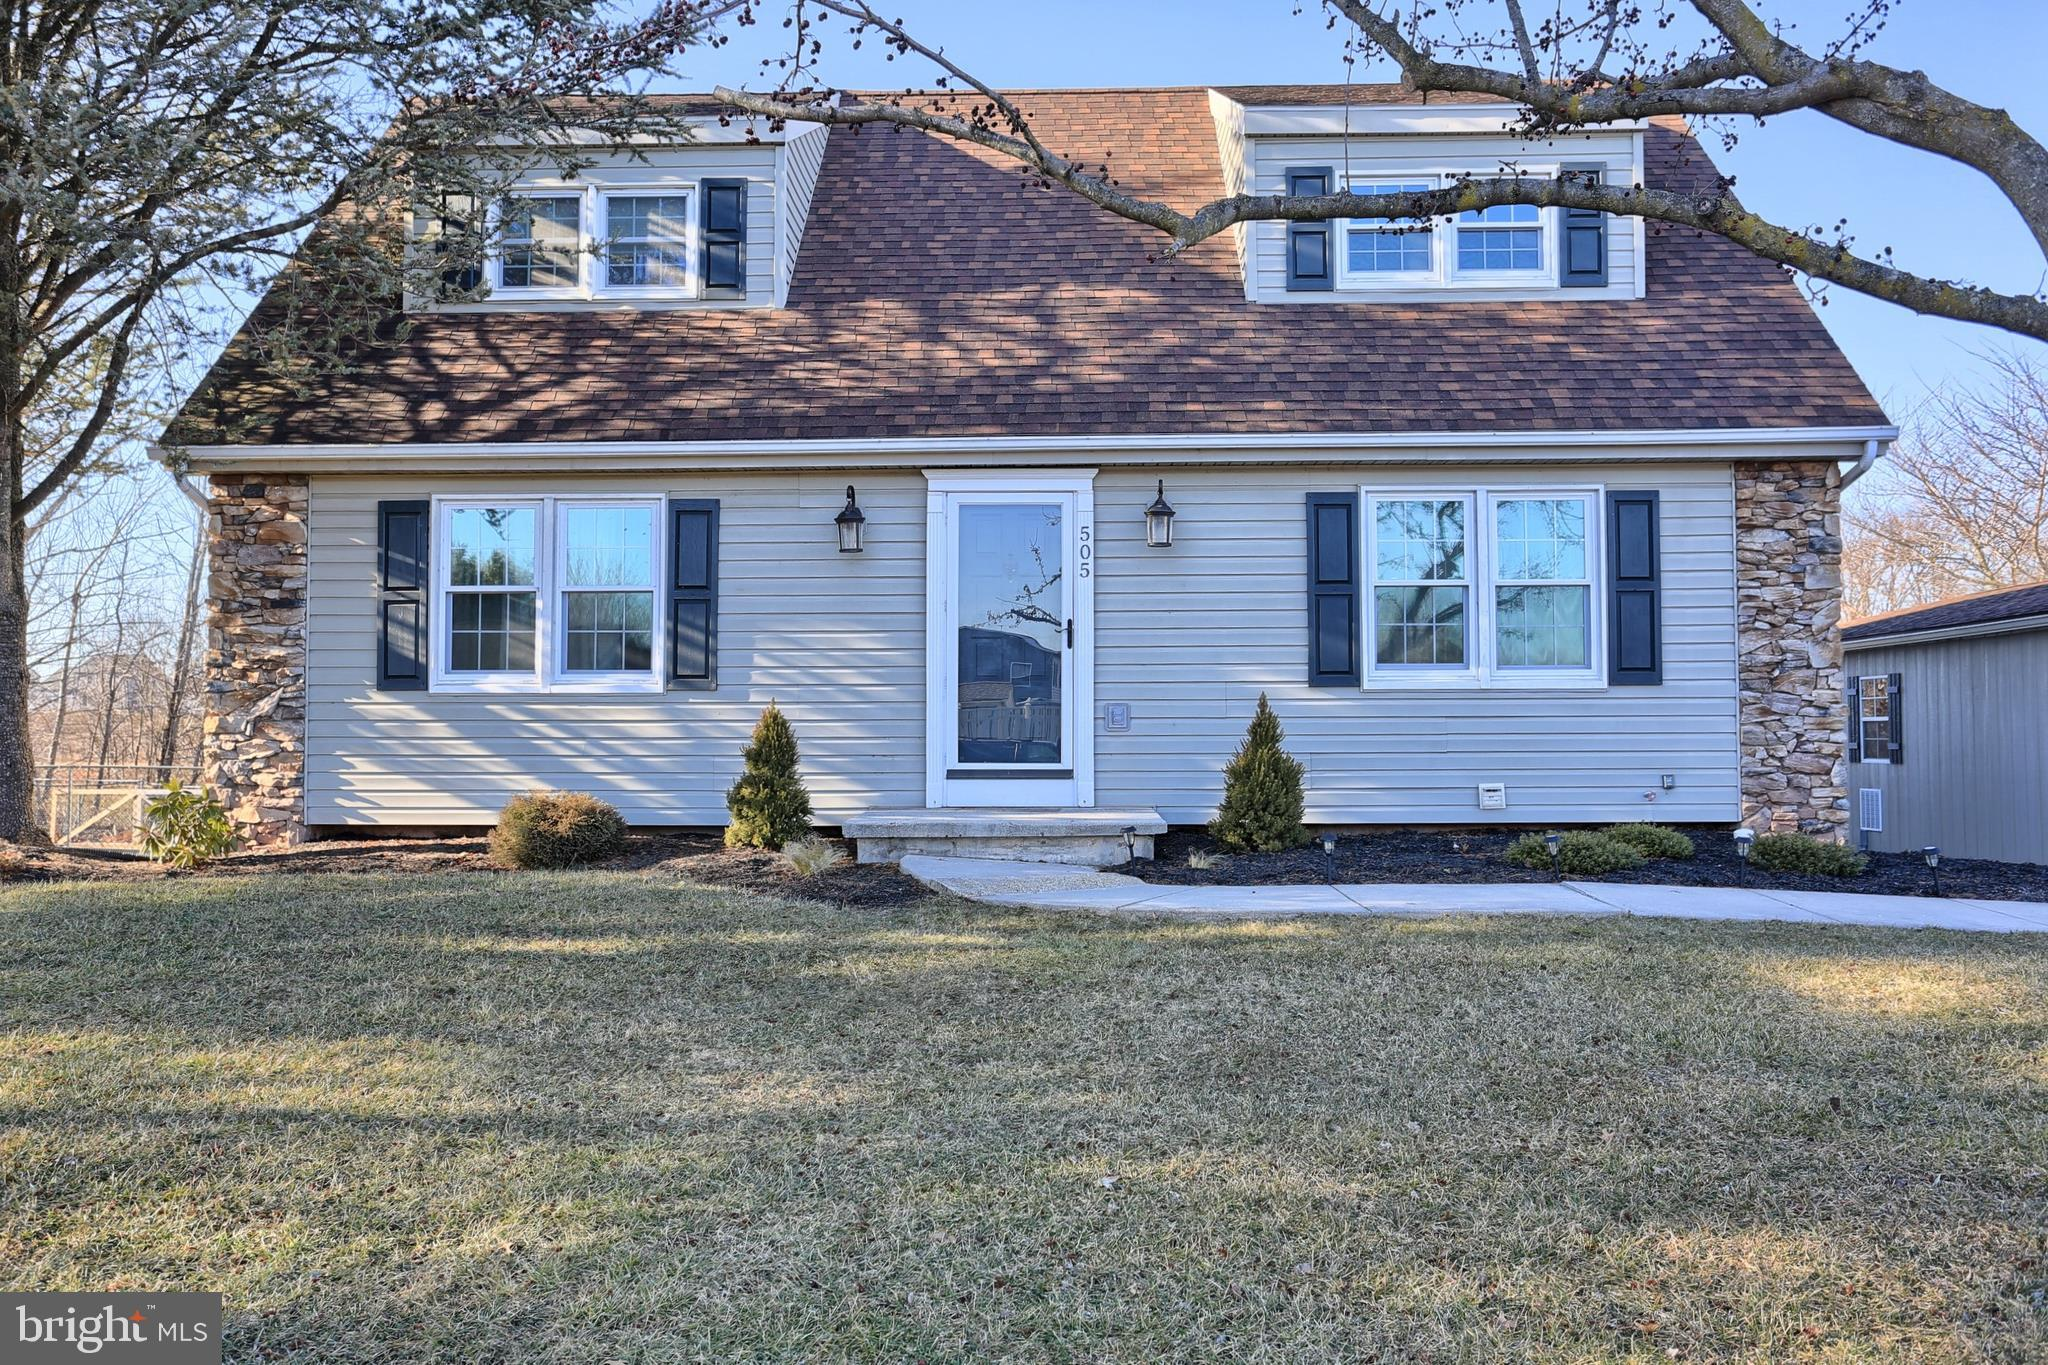 505 SHELLEYS LANE, ETTERS, PA 17319